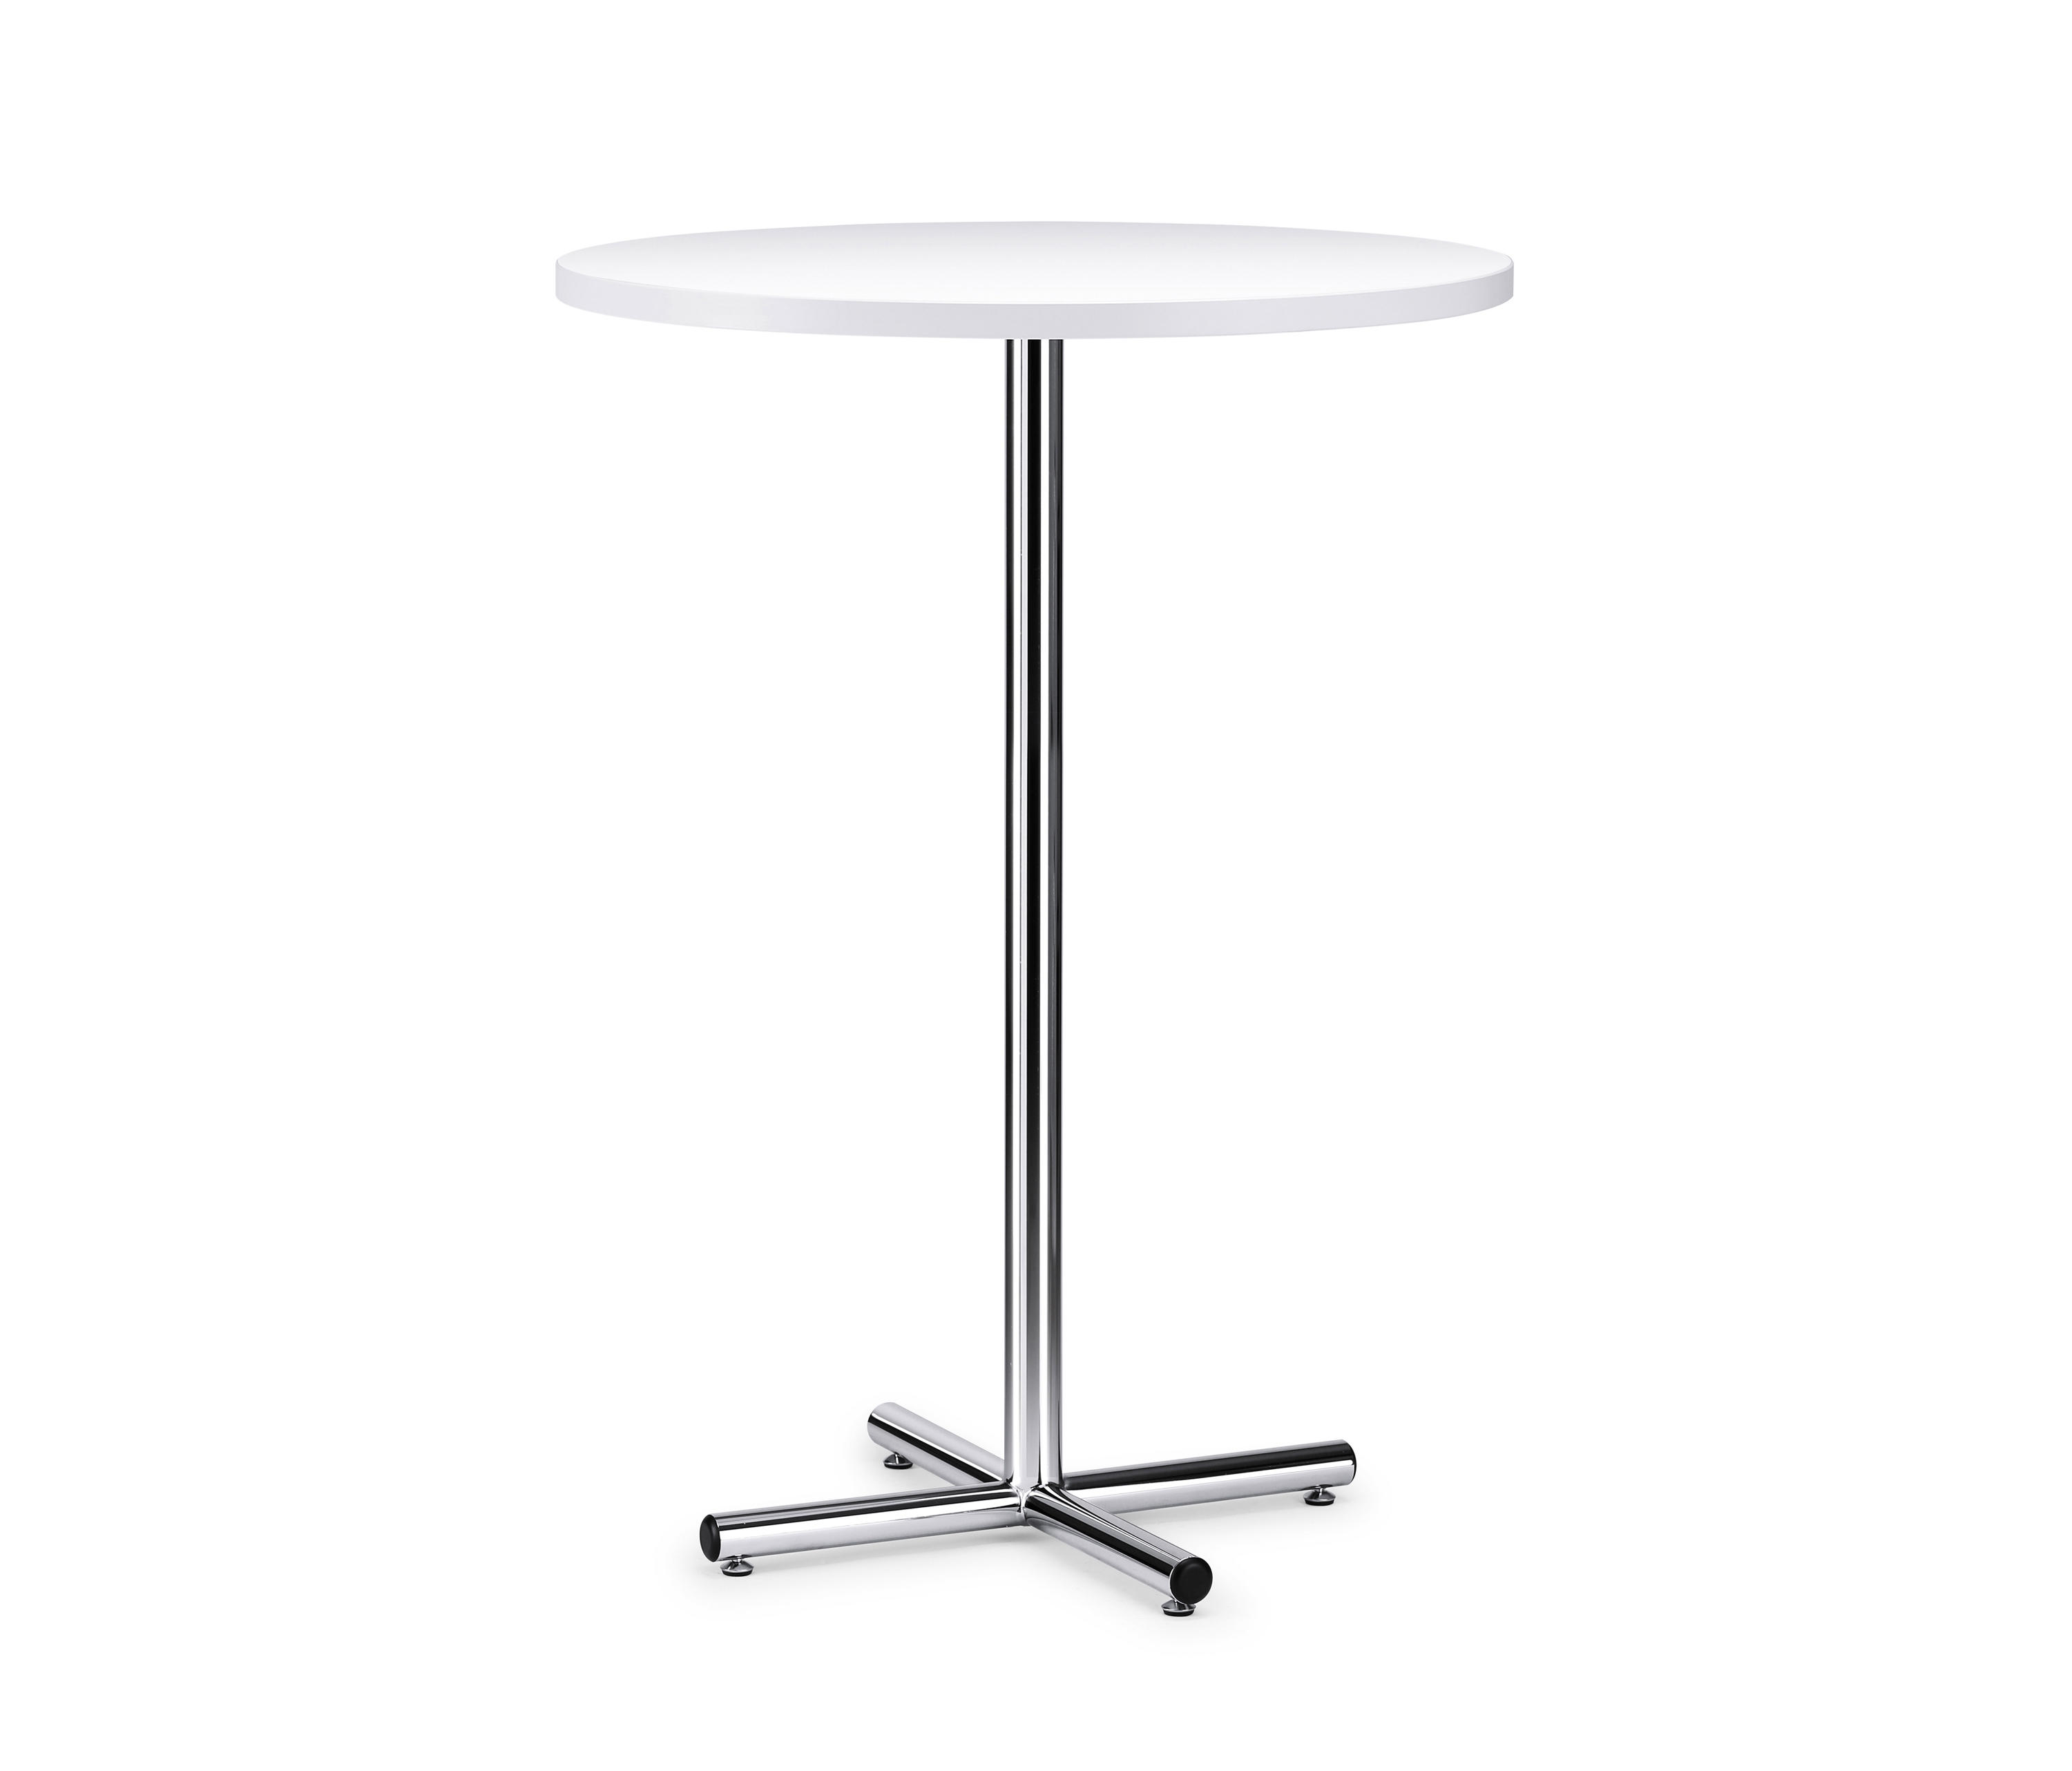 FORMEOIS1 8000H - Bar tables from Interstuhl Büromöbel GmbH & Co. KG ...